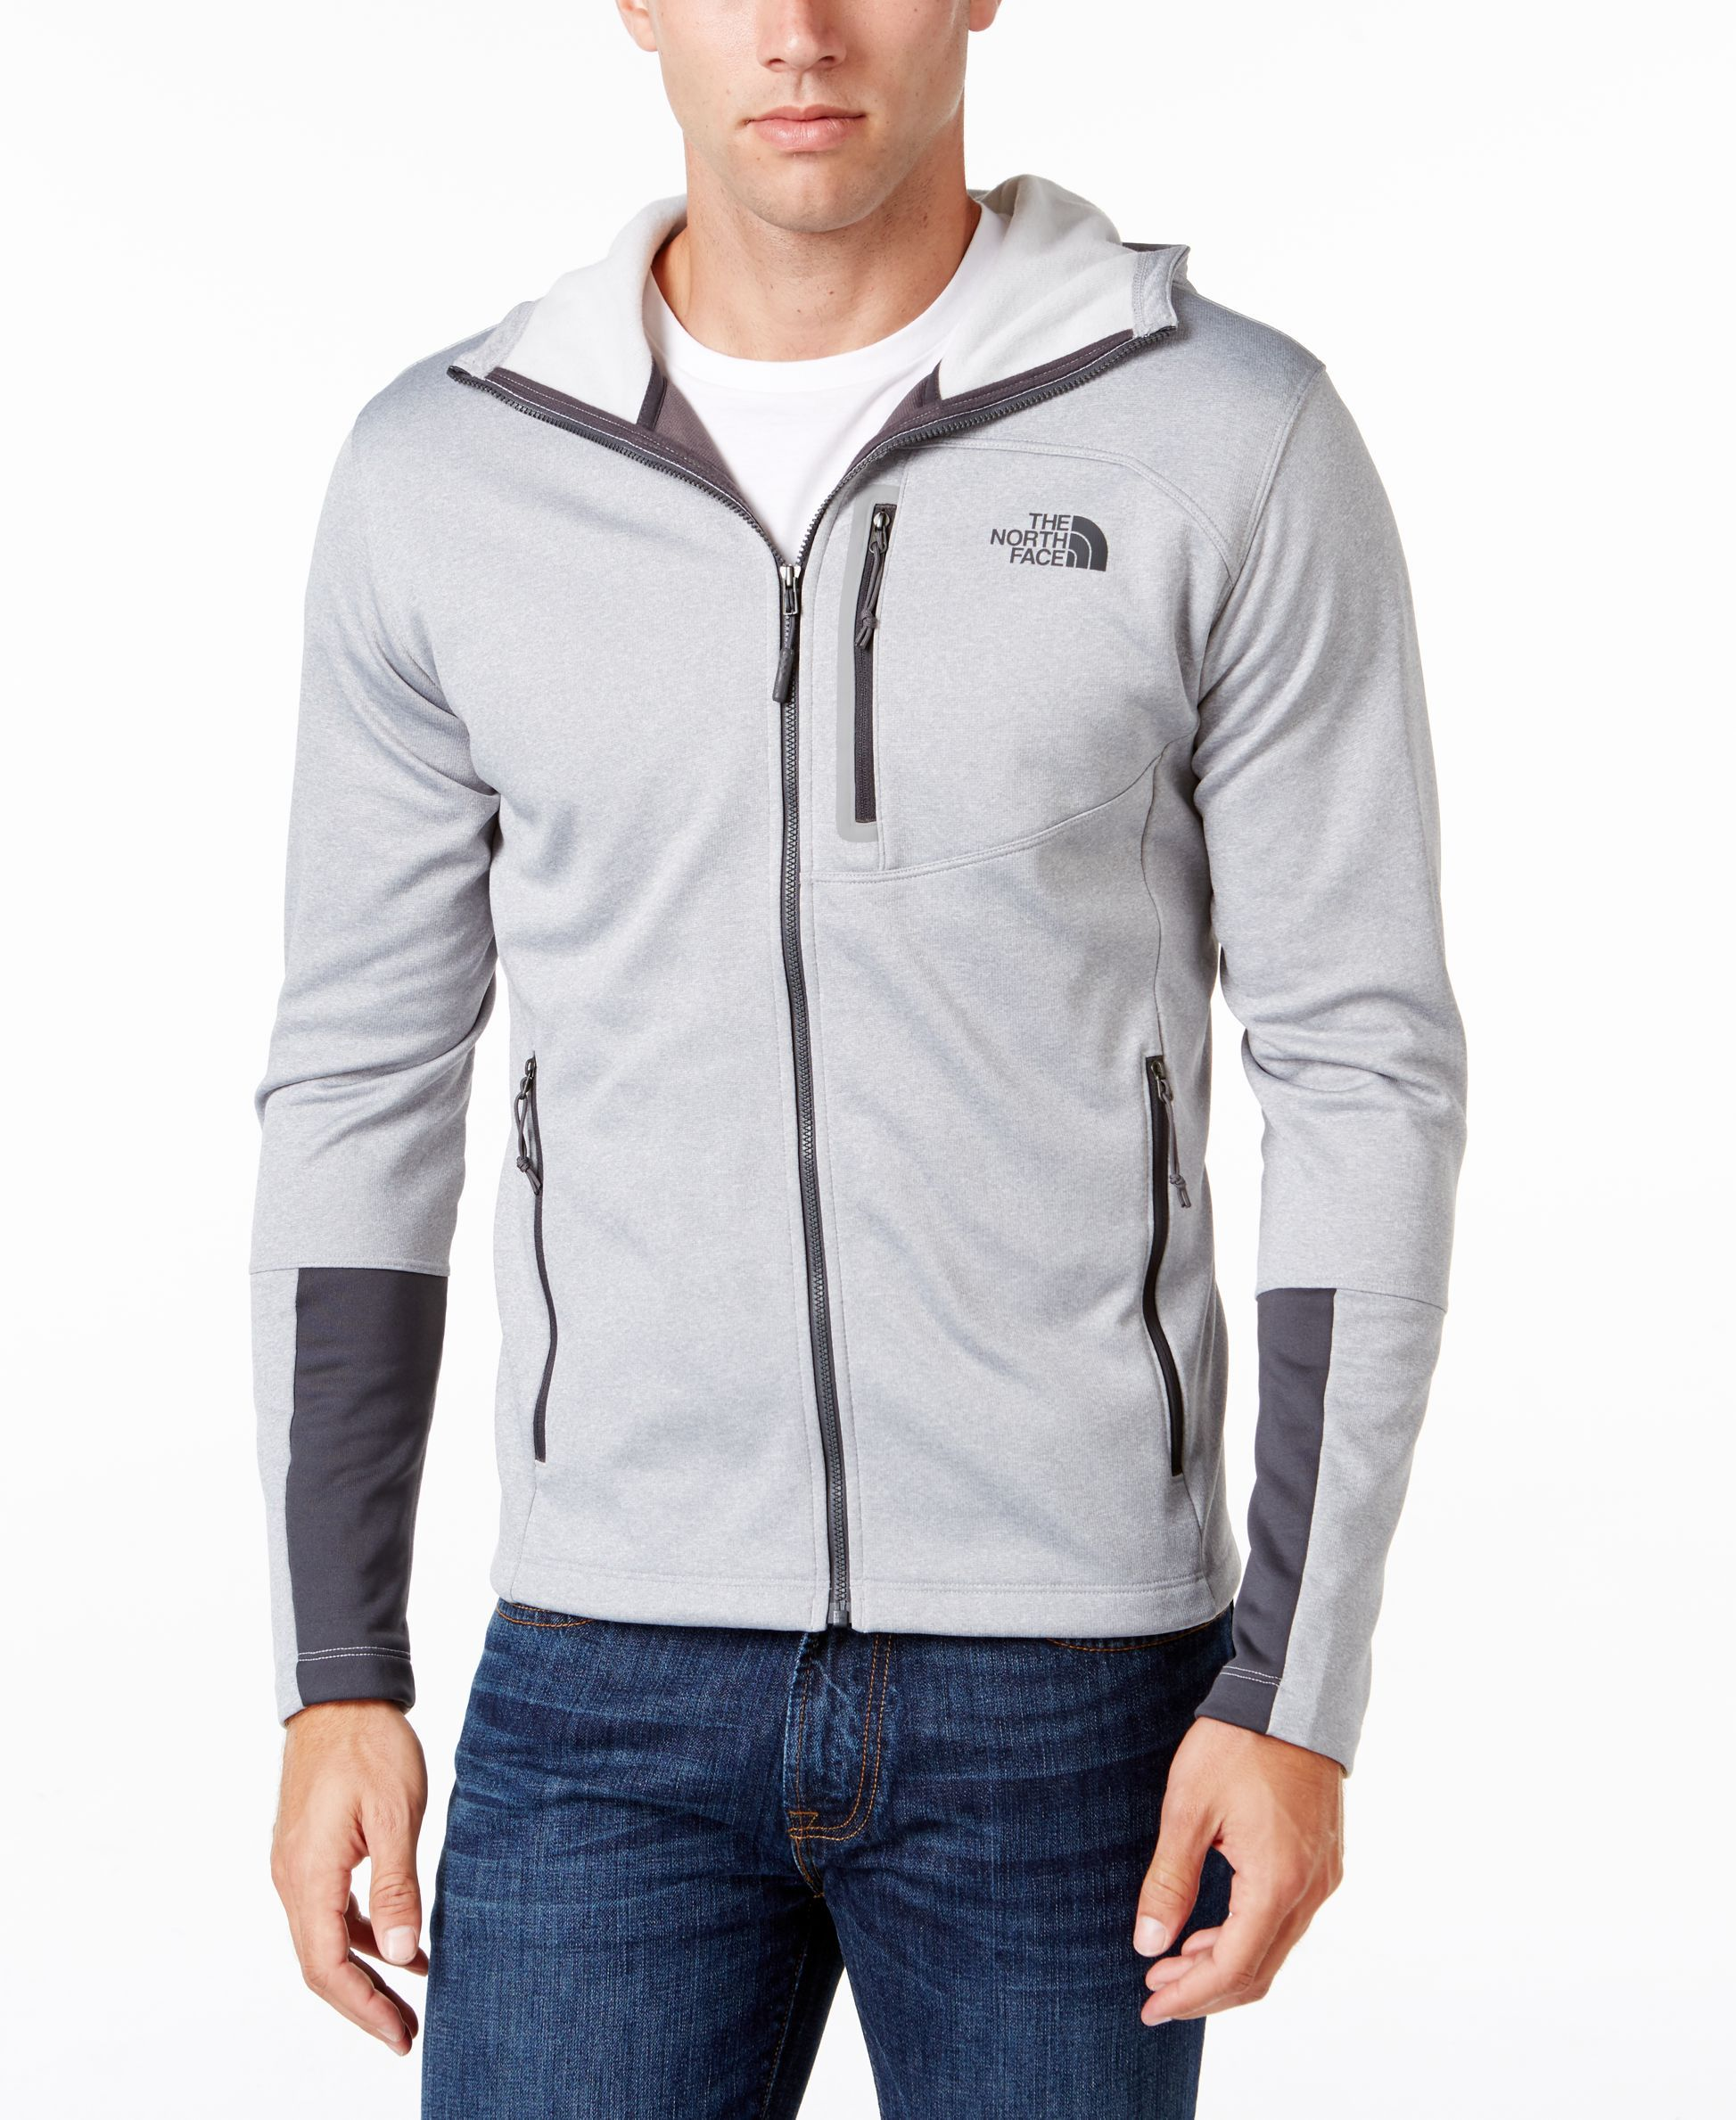 fde86954d The North Face Men's Canyonlands Full-Zip Hoodie | Stuff I'd Wear in ...